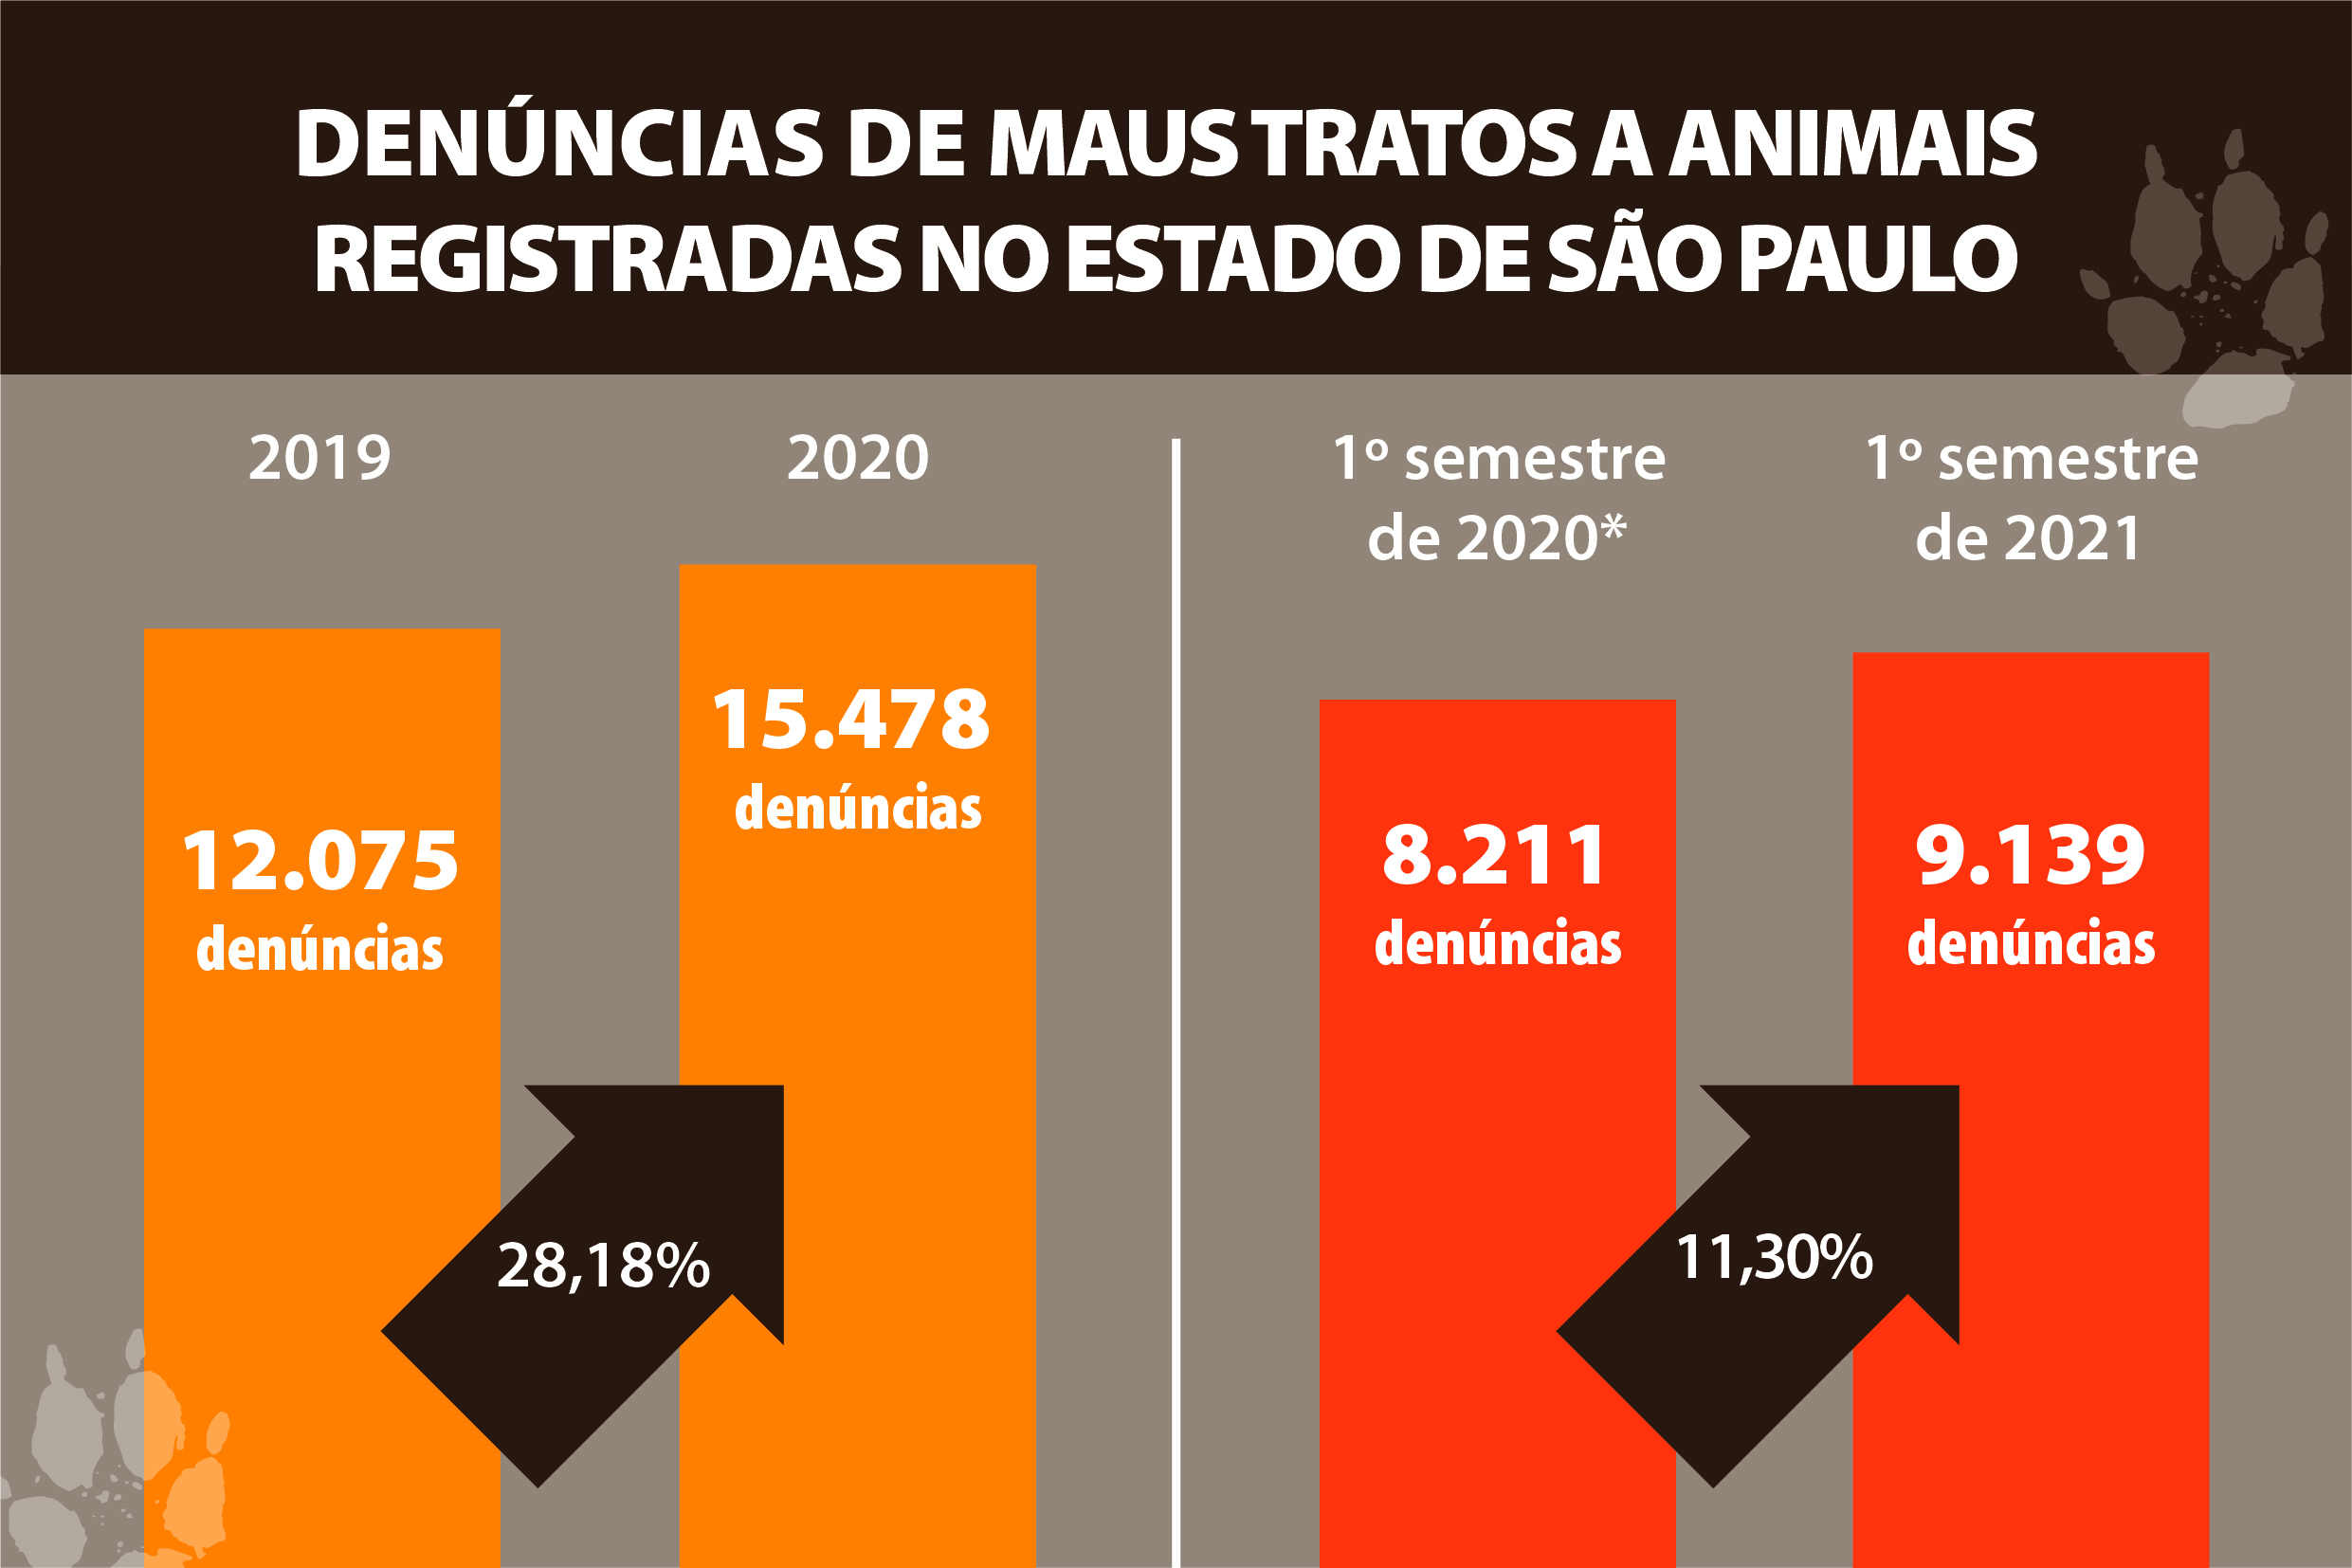 Infográfico <a style='float:right' href='https://www3.al.sp.gov.br/repositorio/noticia/N-08-2021/fg273075.jpg' target=_blank><img src='/_img/material-file-download-white.png' width='14px' alt='Clique para baixar a imagem'></a>